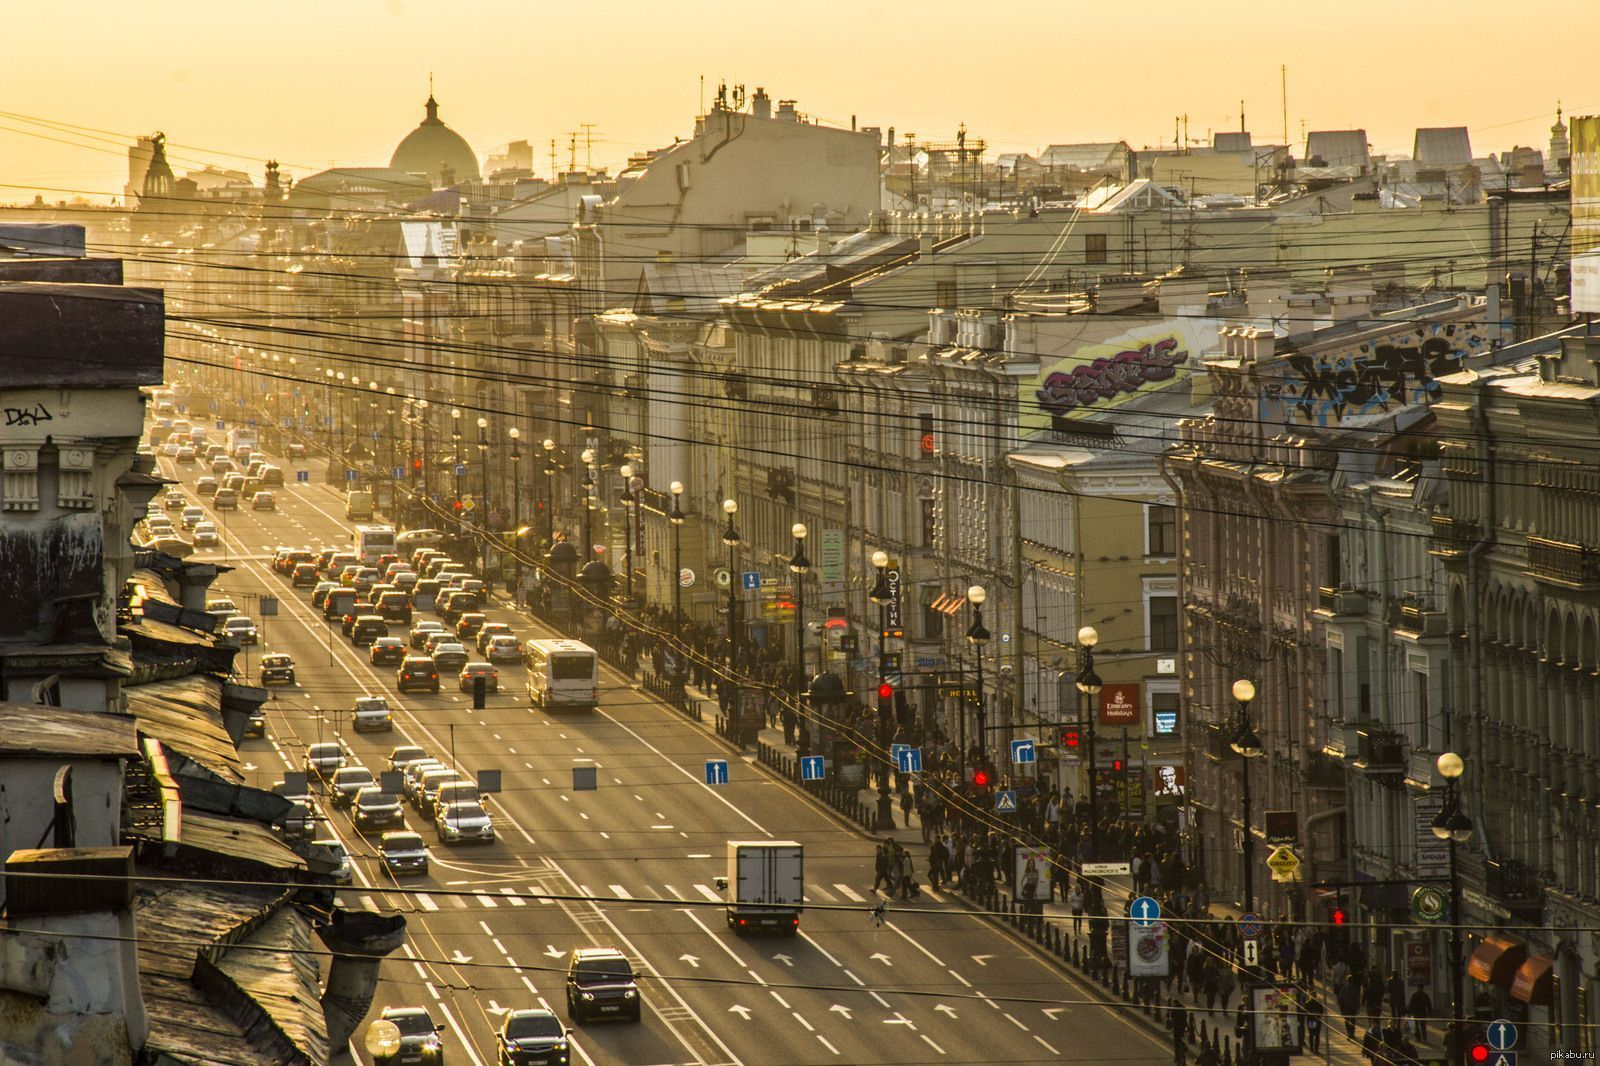 Just walking distance from Nevsky Prospekt